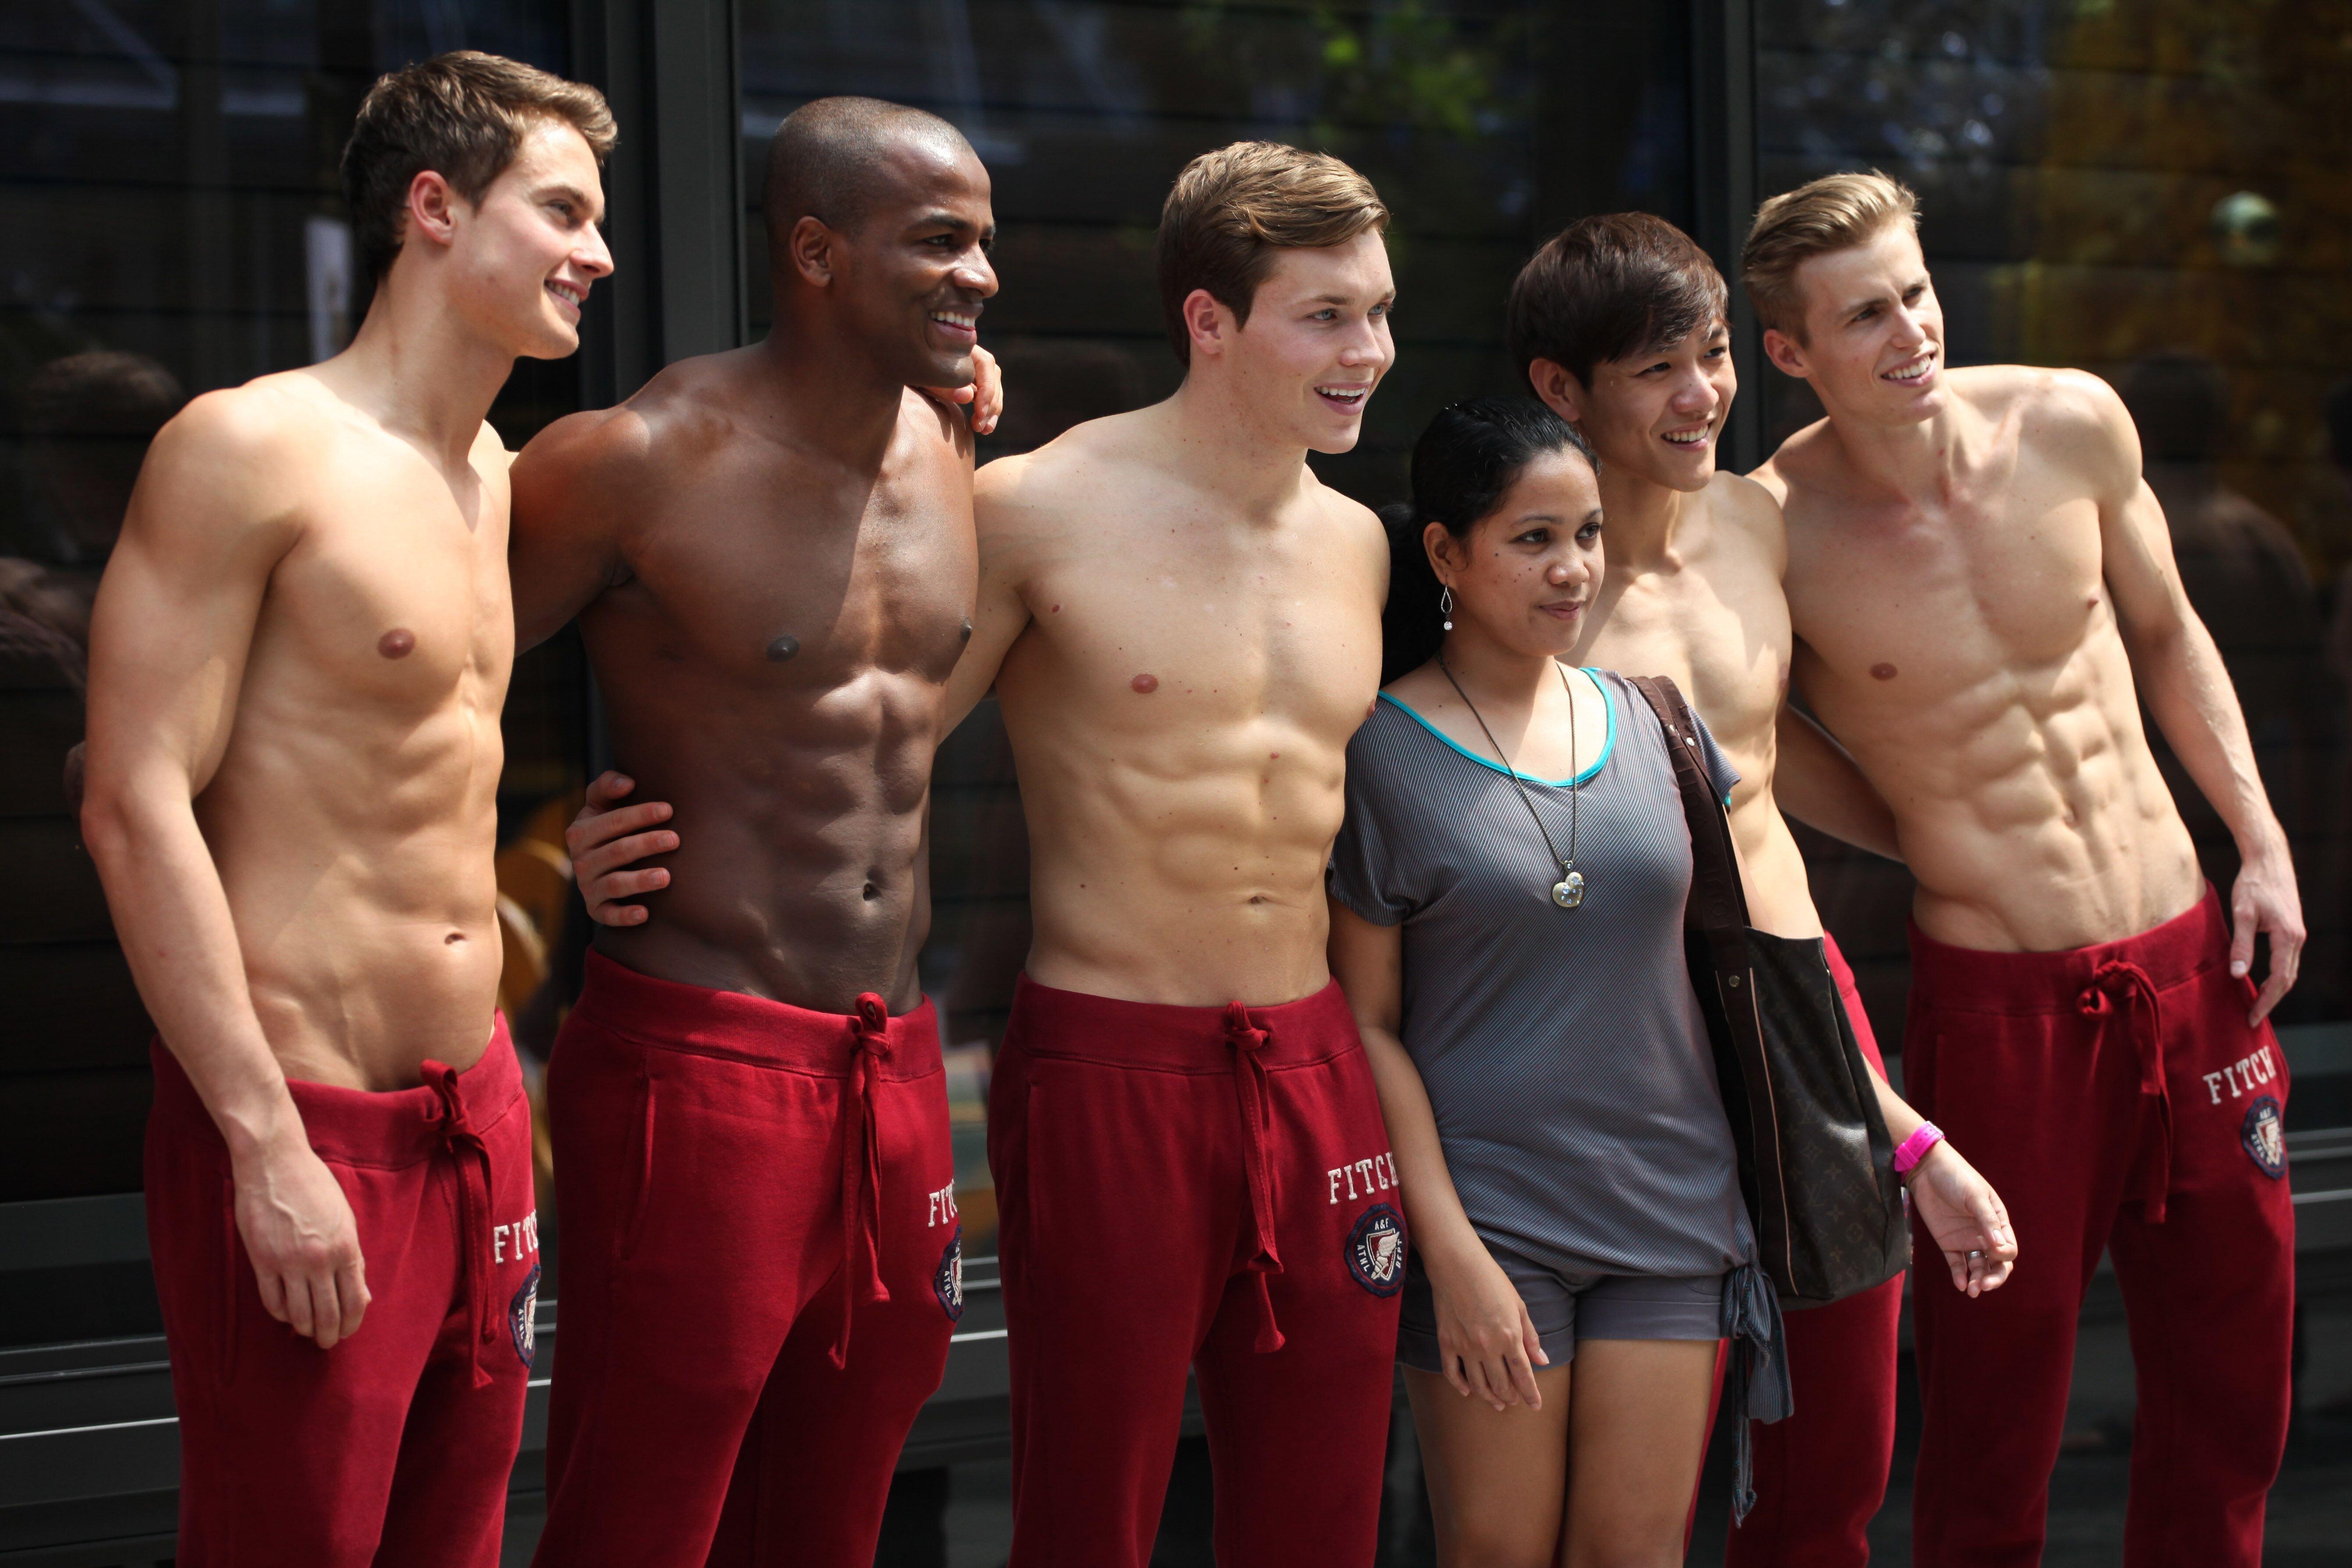 Gay hottest abercrombie models nude